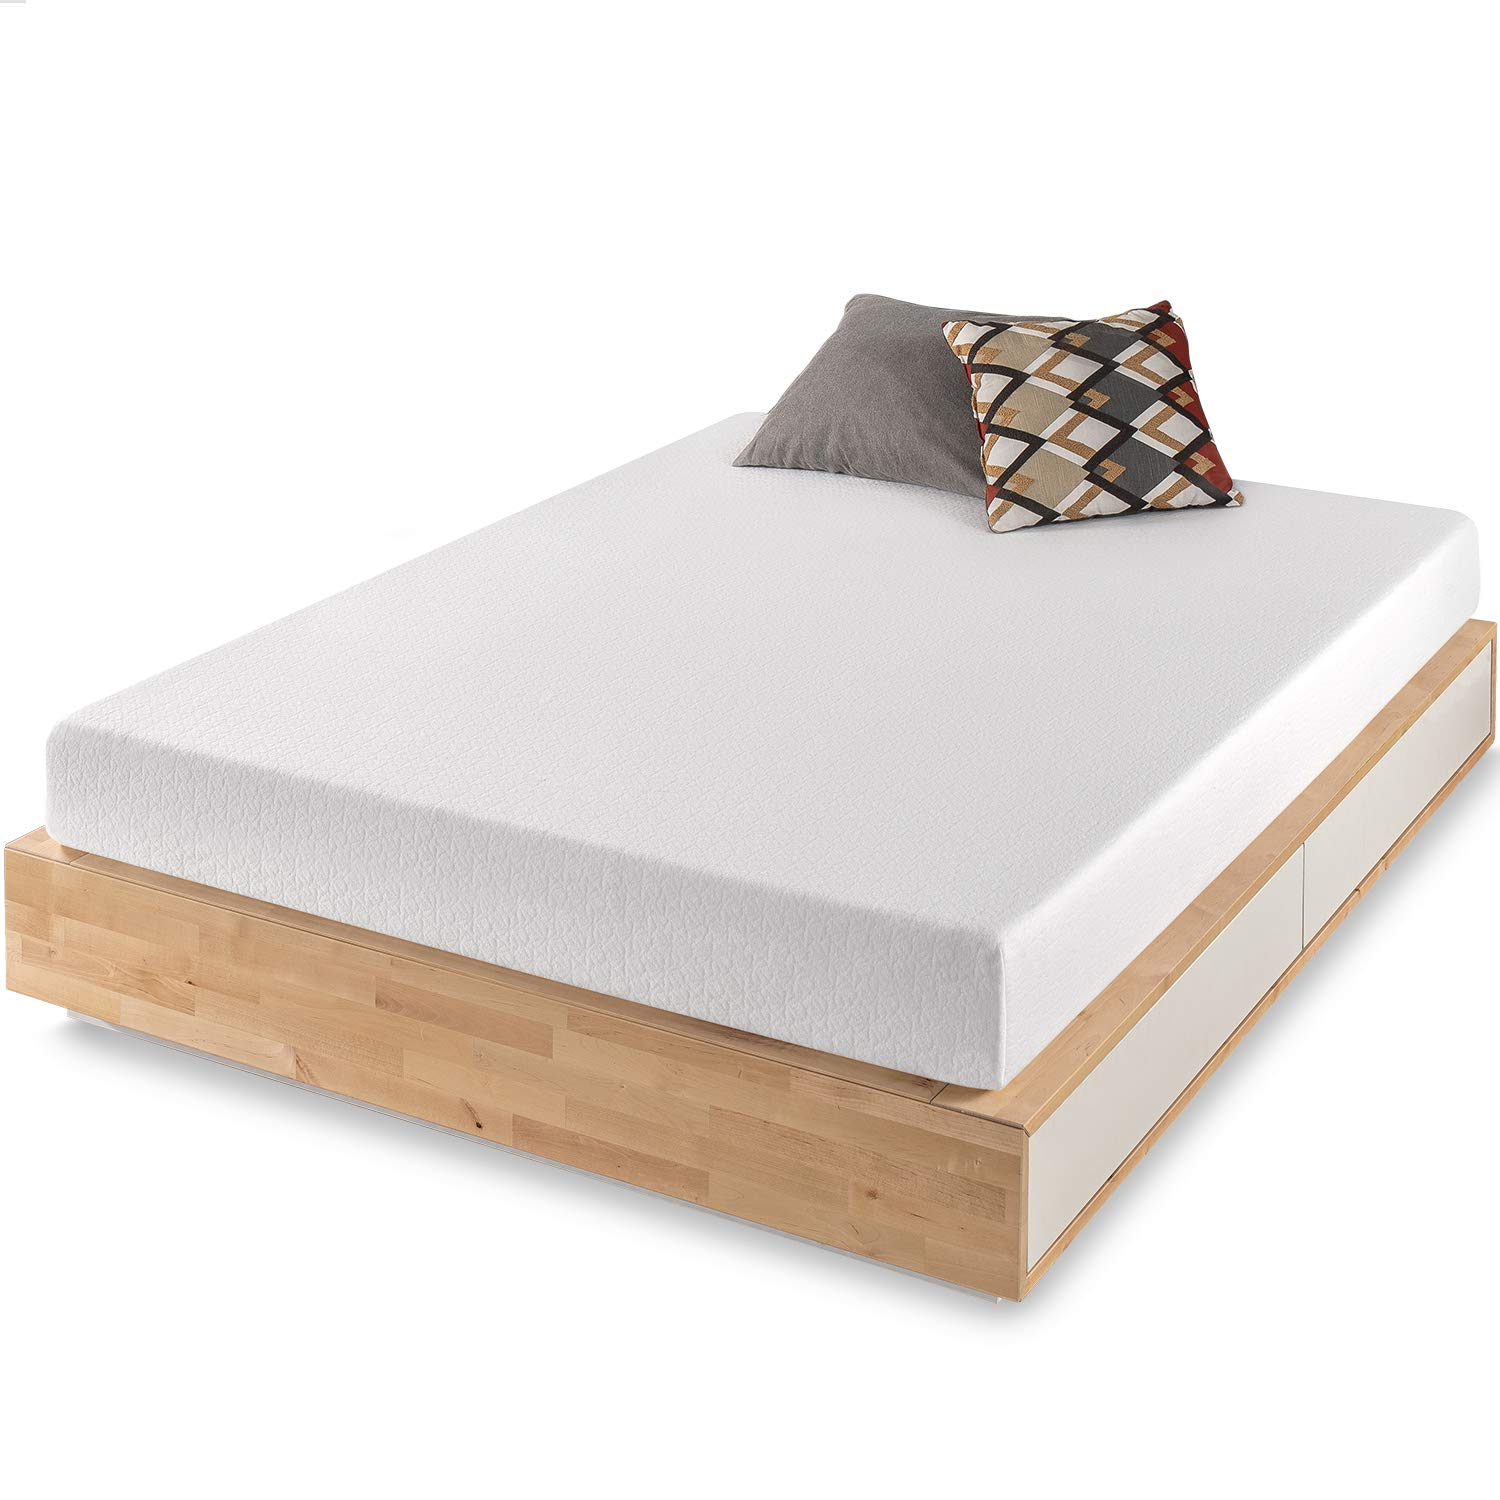 Best Price Mattress 8-Inch Memory Foam Mattress, Queen by Best Price Mattress